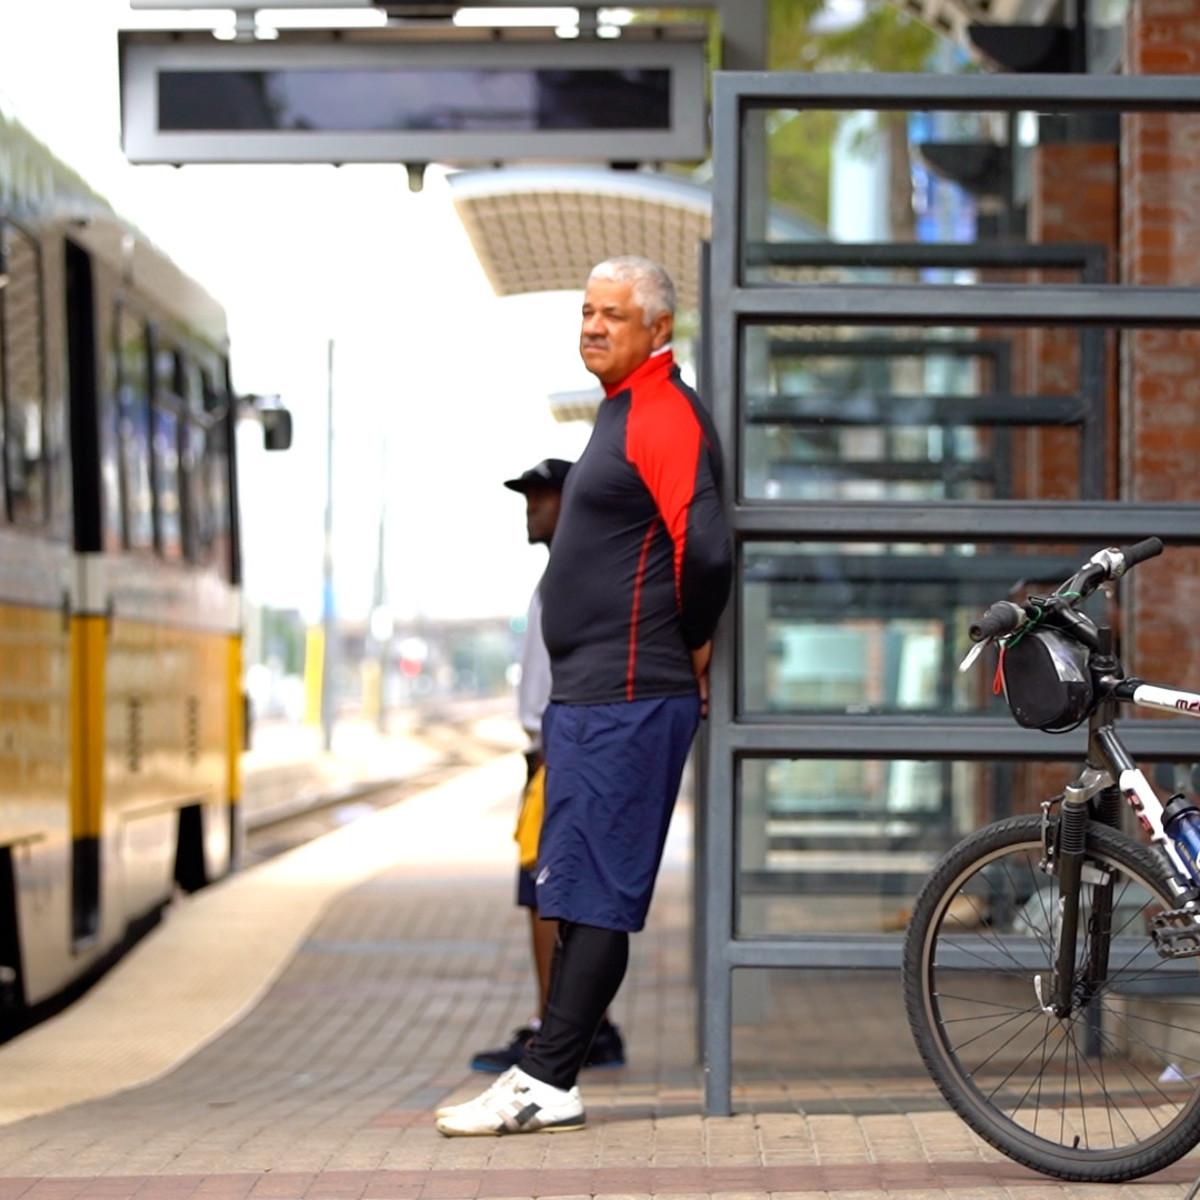 Man waits to board DART with his bike